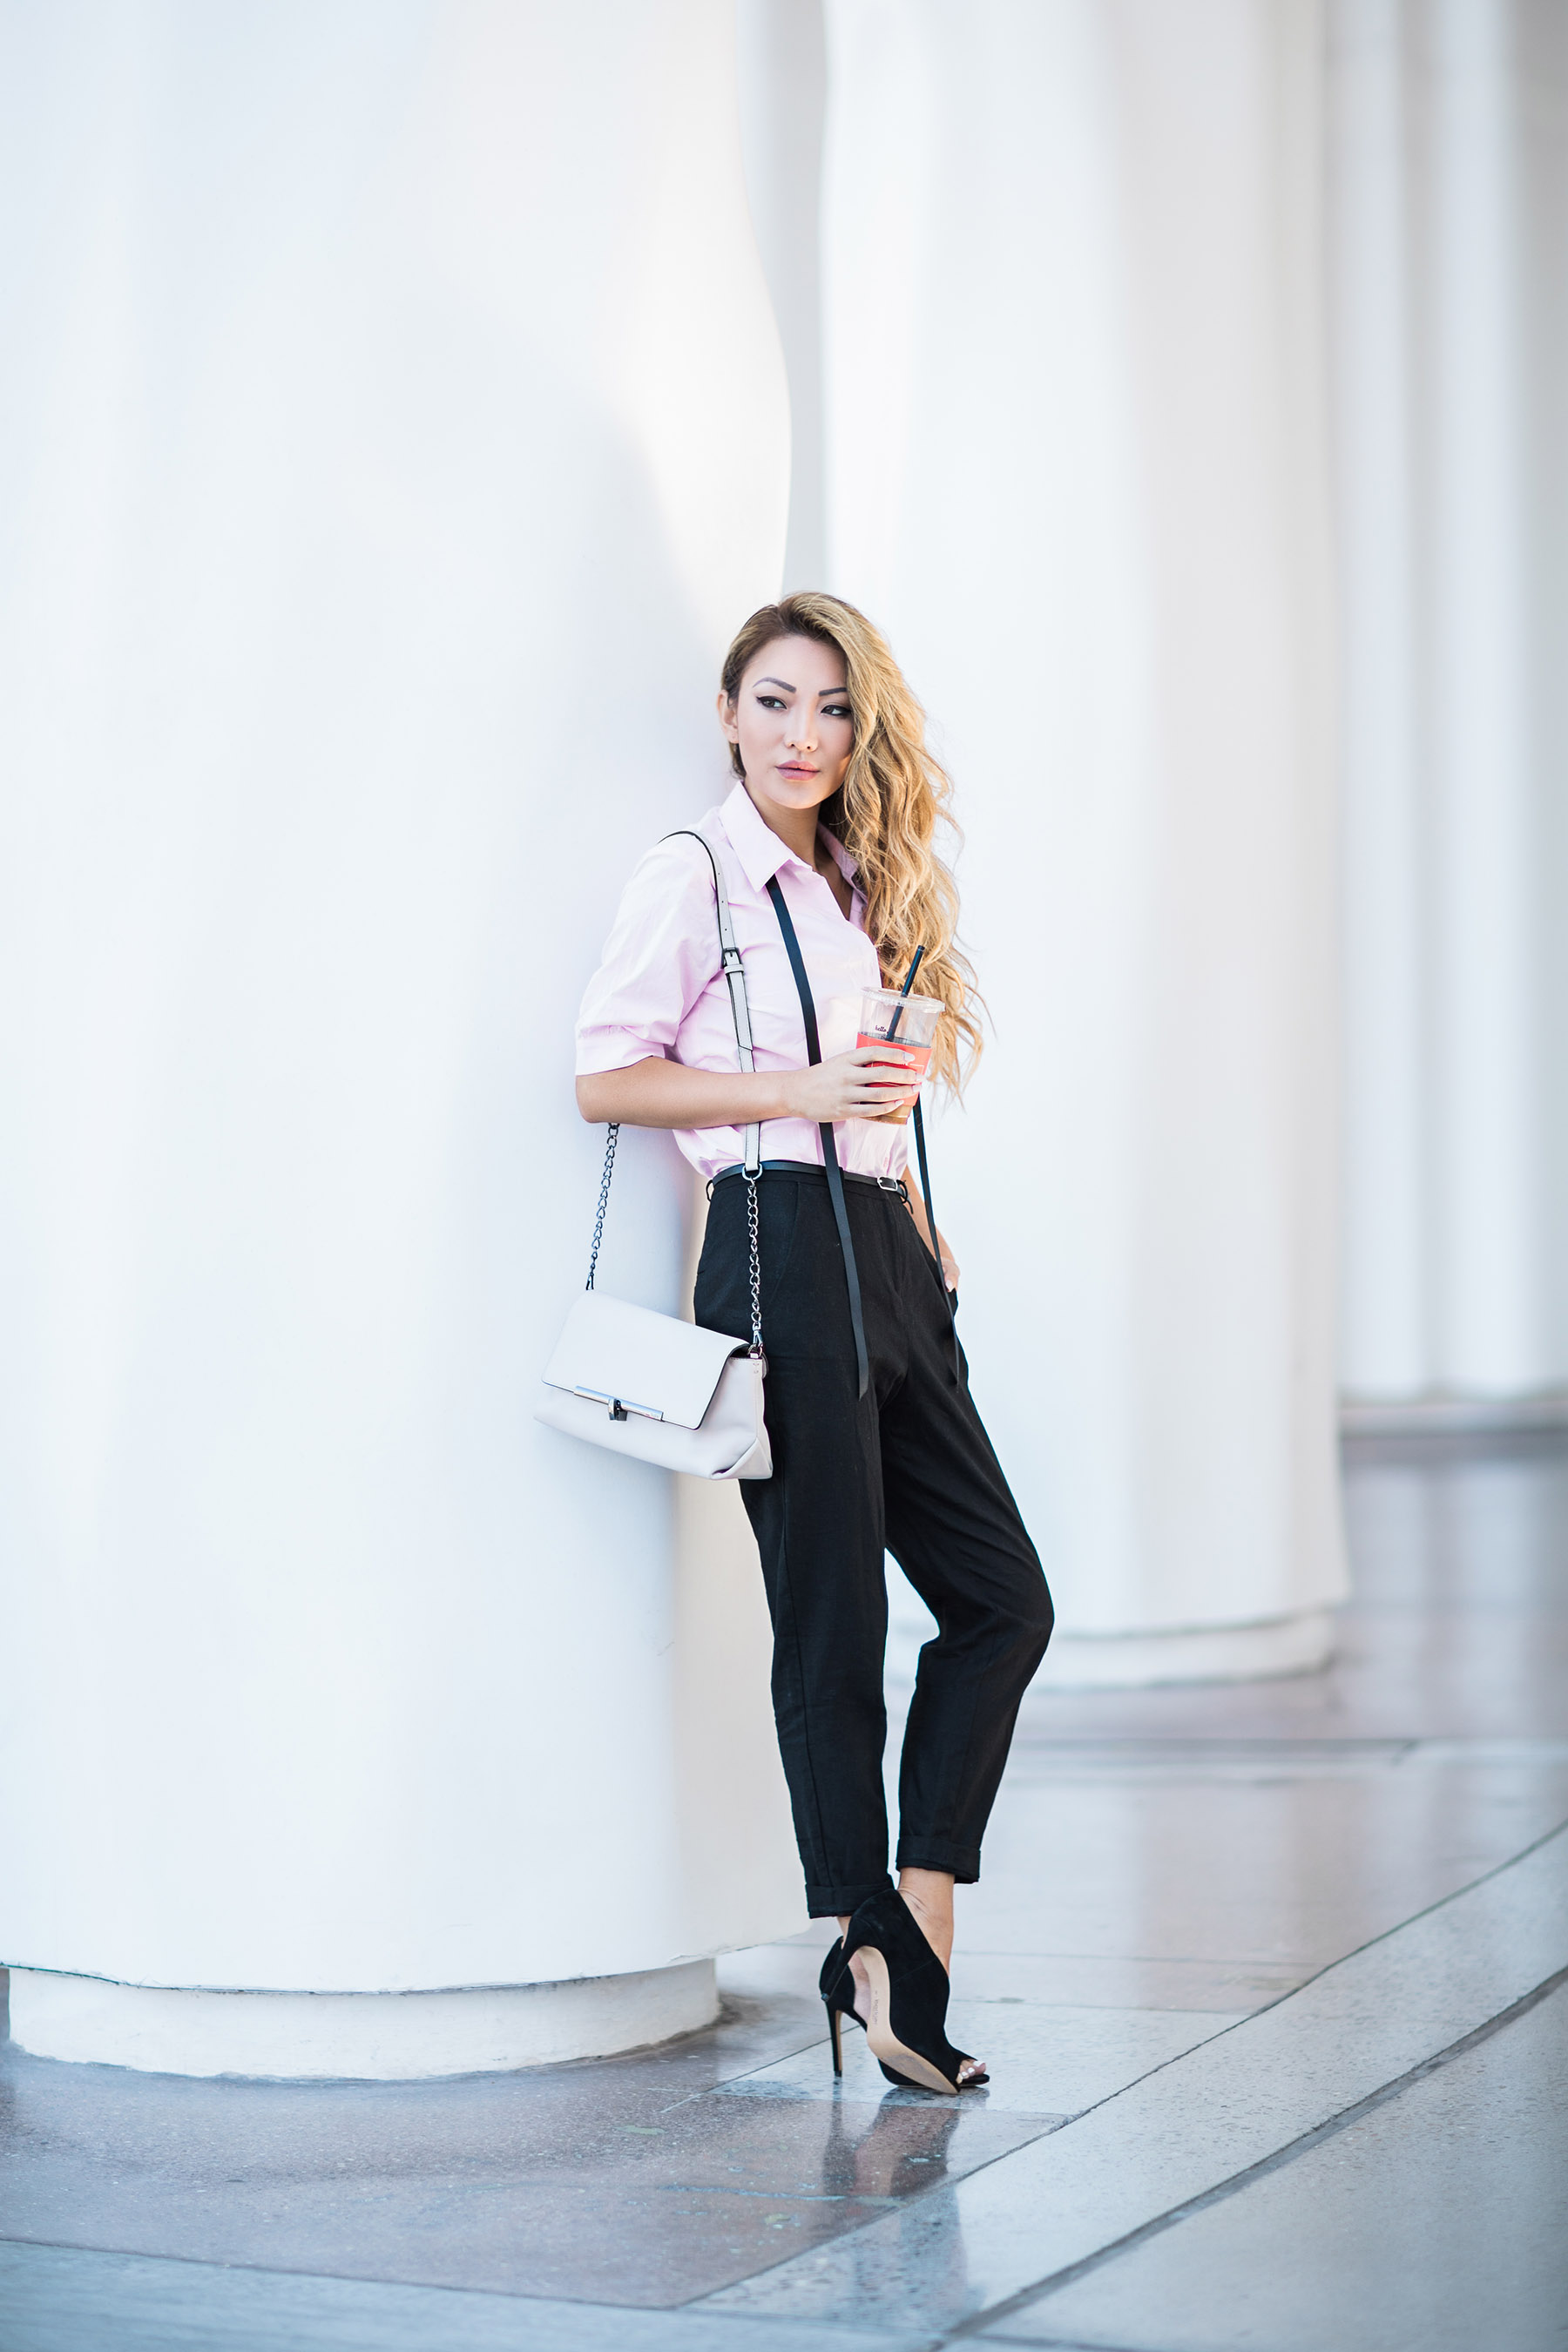 7 Pieces to Spice Up Your Work Outfit // NotJessFashion